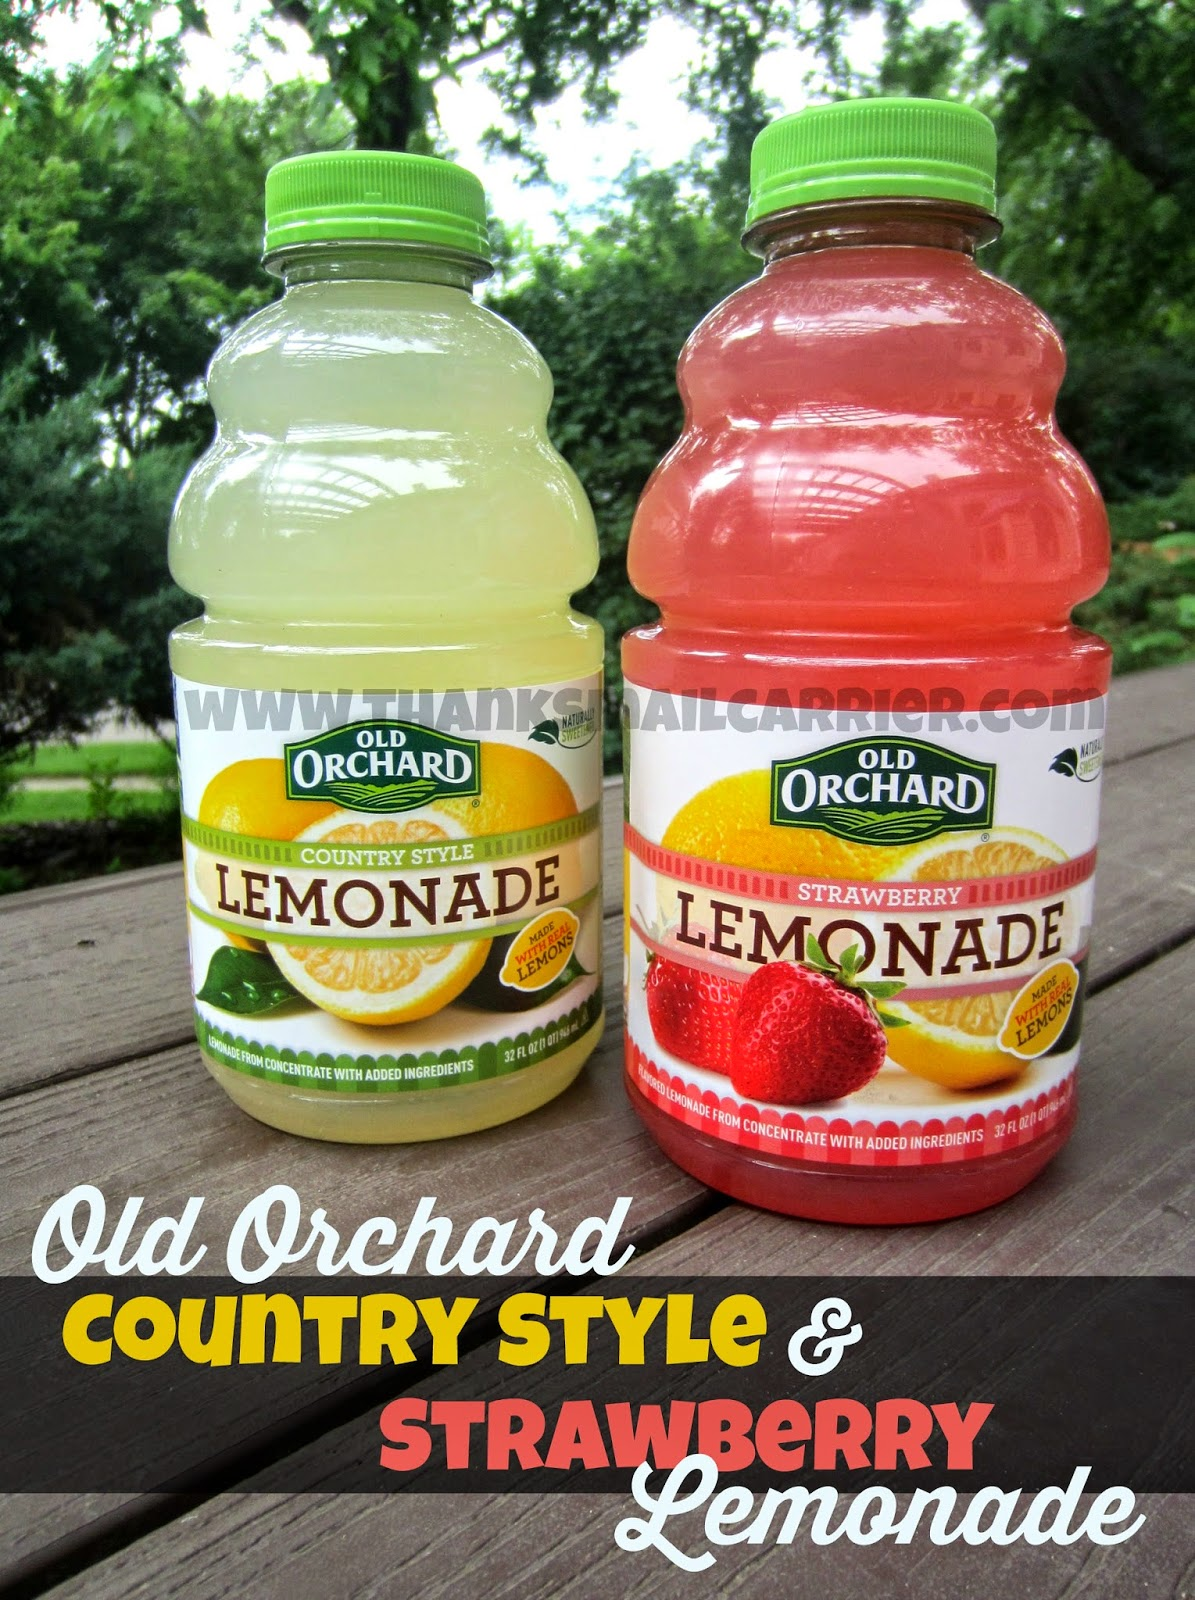 Old Orchard Lemonade